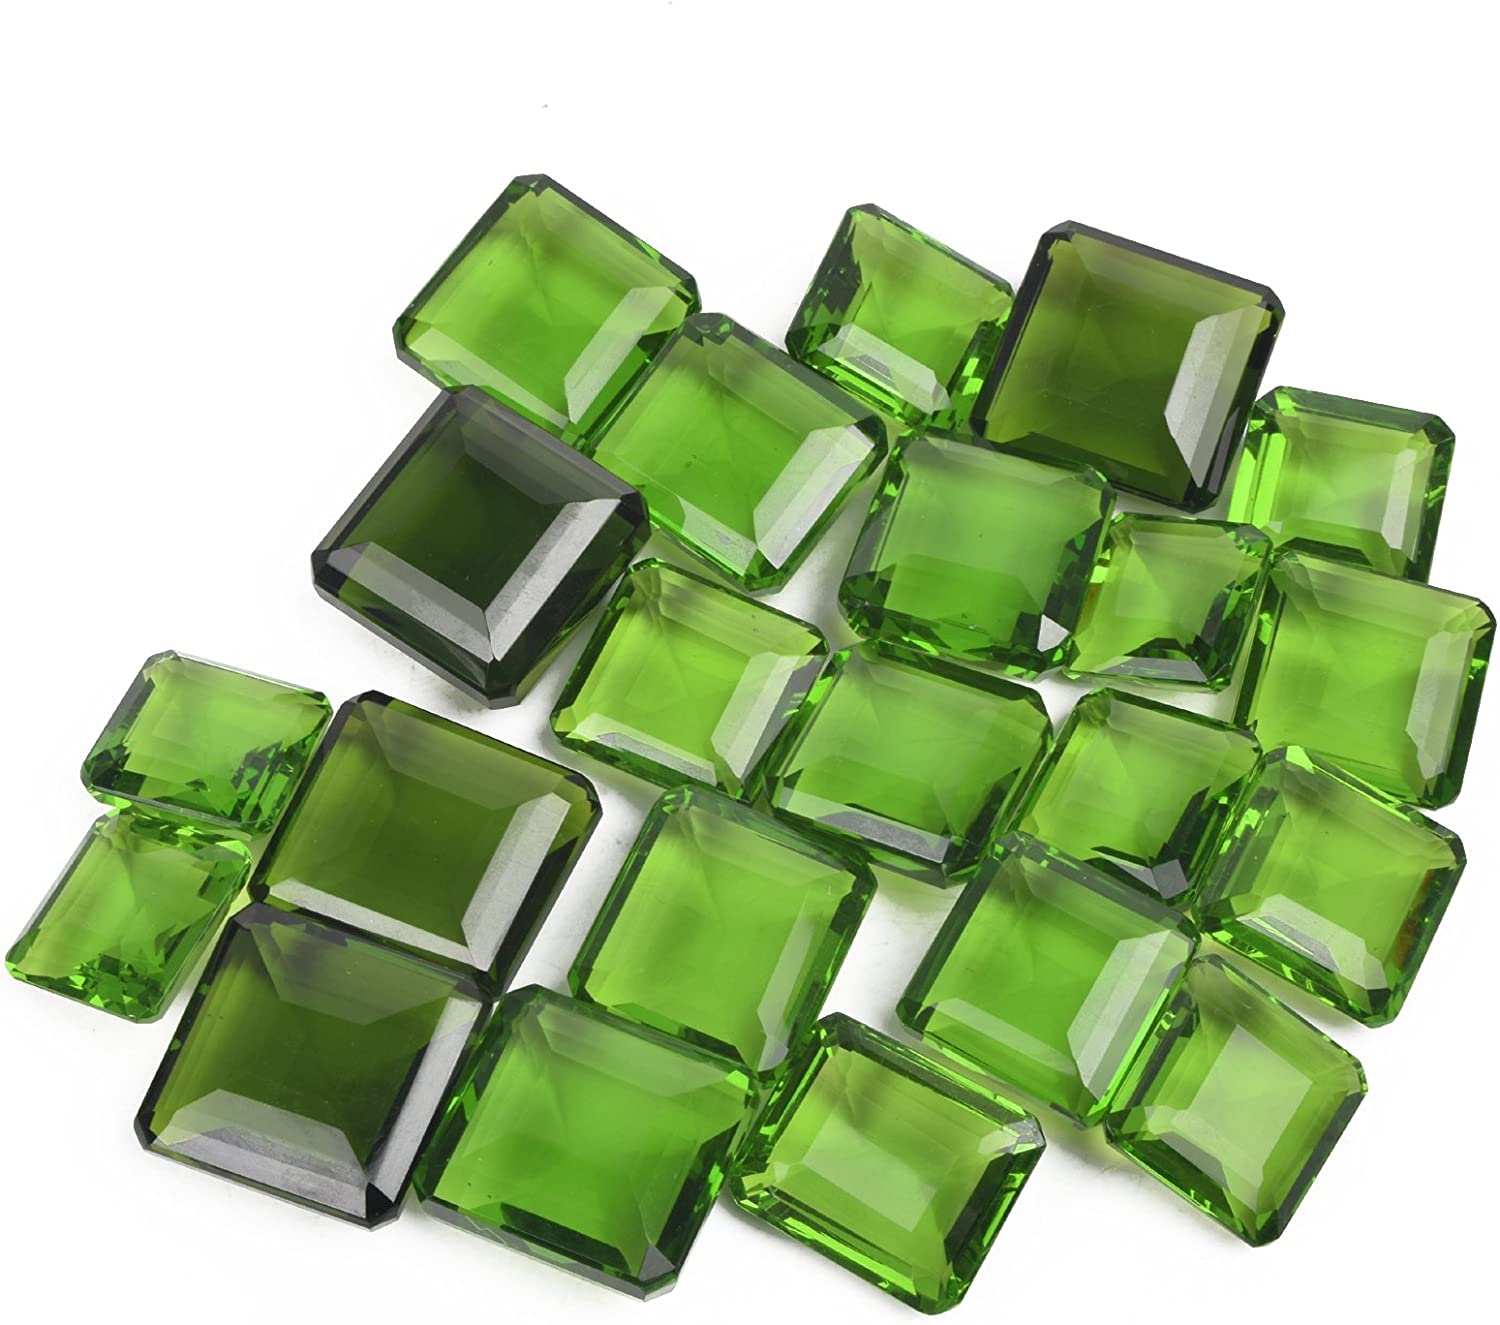 500 Ct. Brazilian Excellent Square Cut 6 Pcs Green Amethyst Loose Gemstone Lot